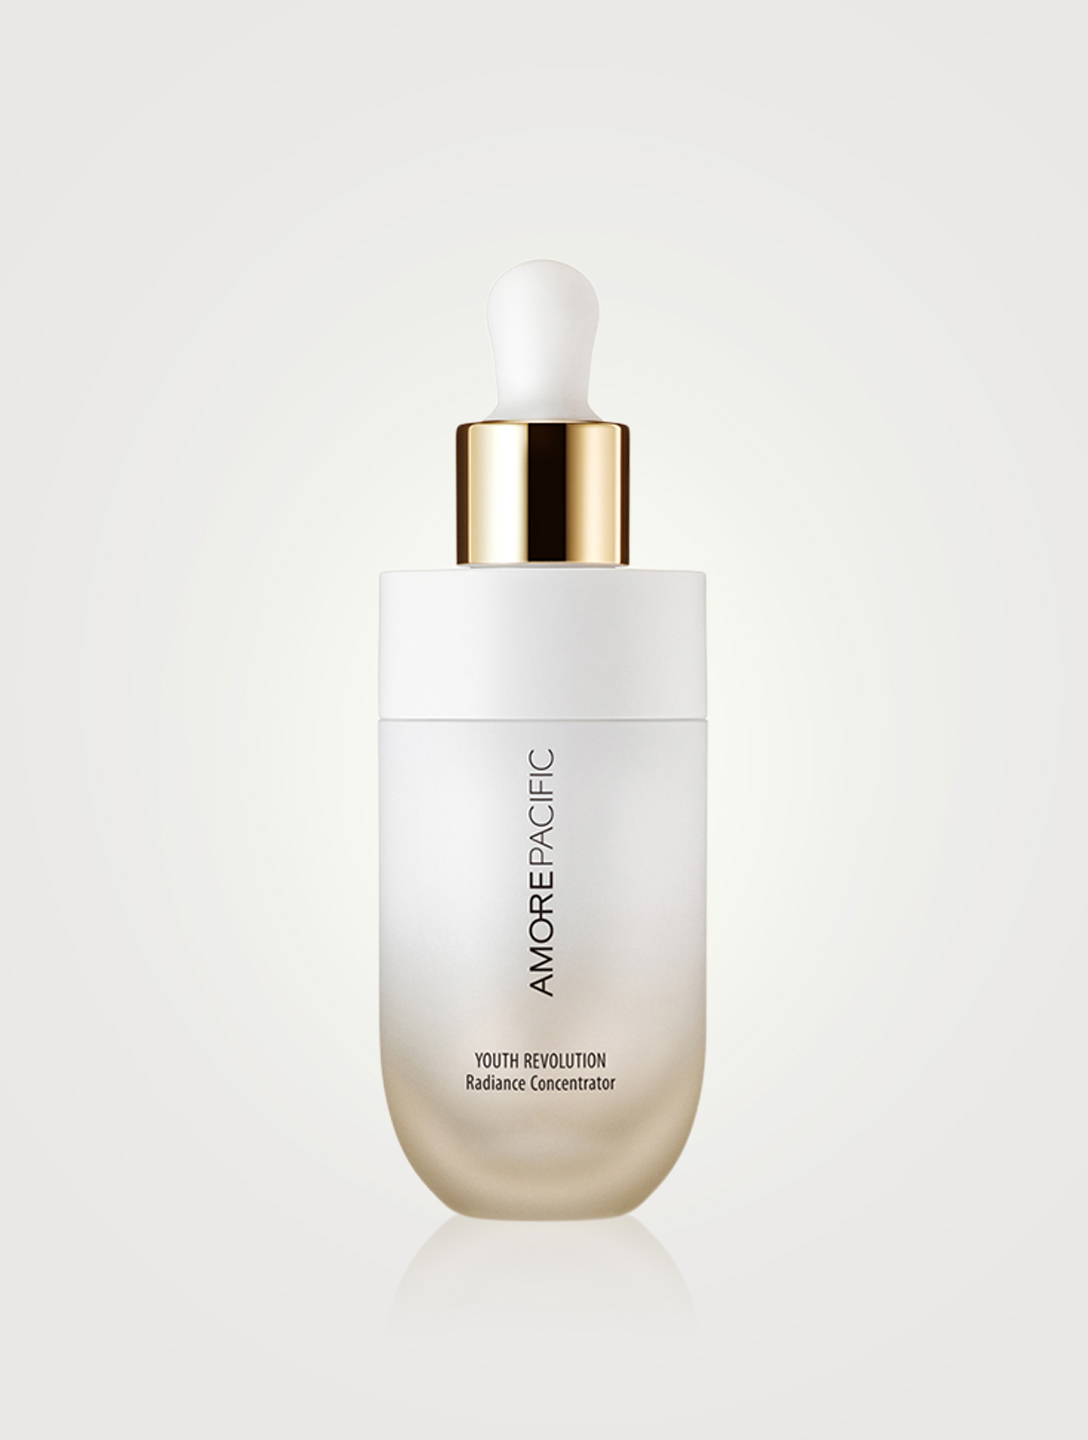 AMOREPACIFIC Concentrateur d'éclat Radiance Youth Revolution Beauté